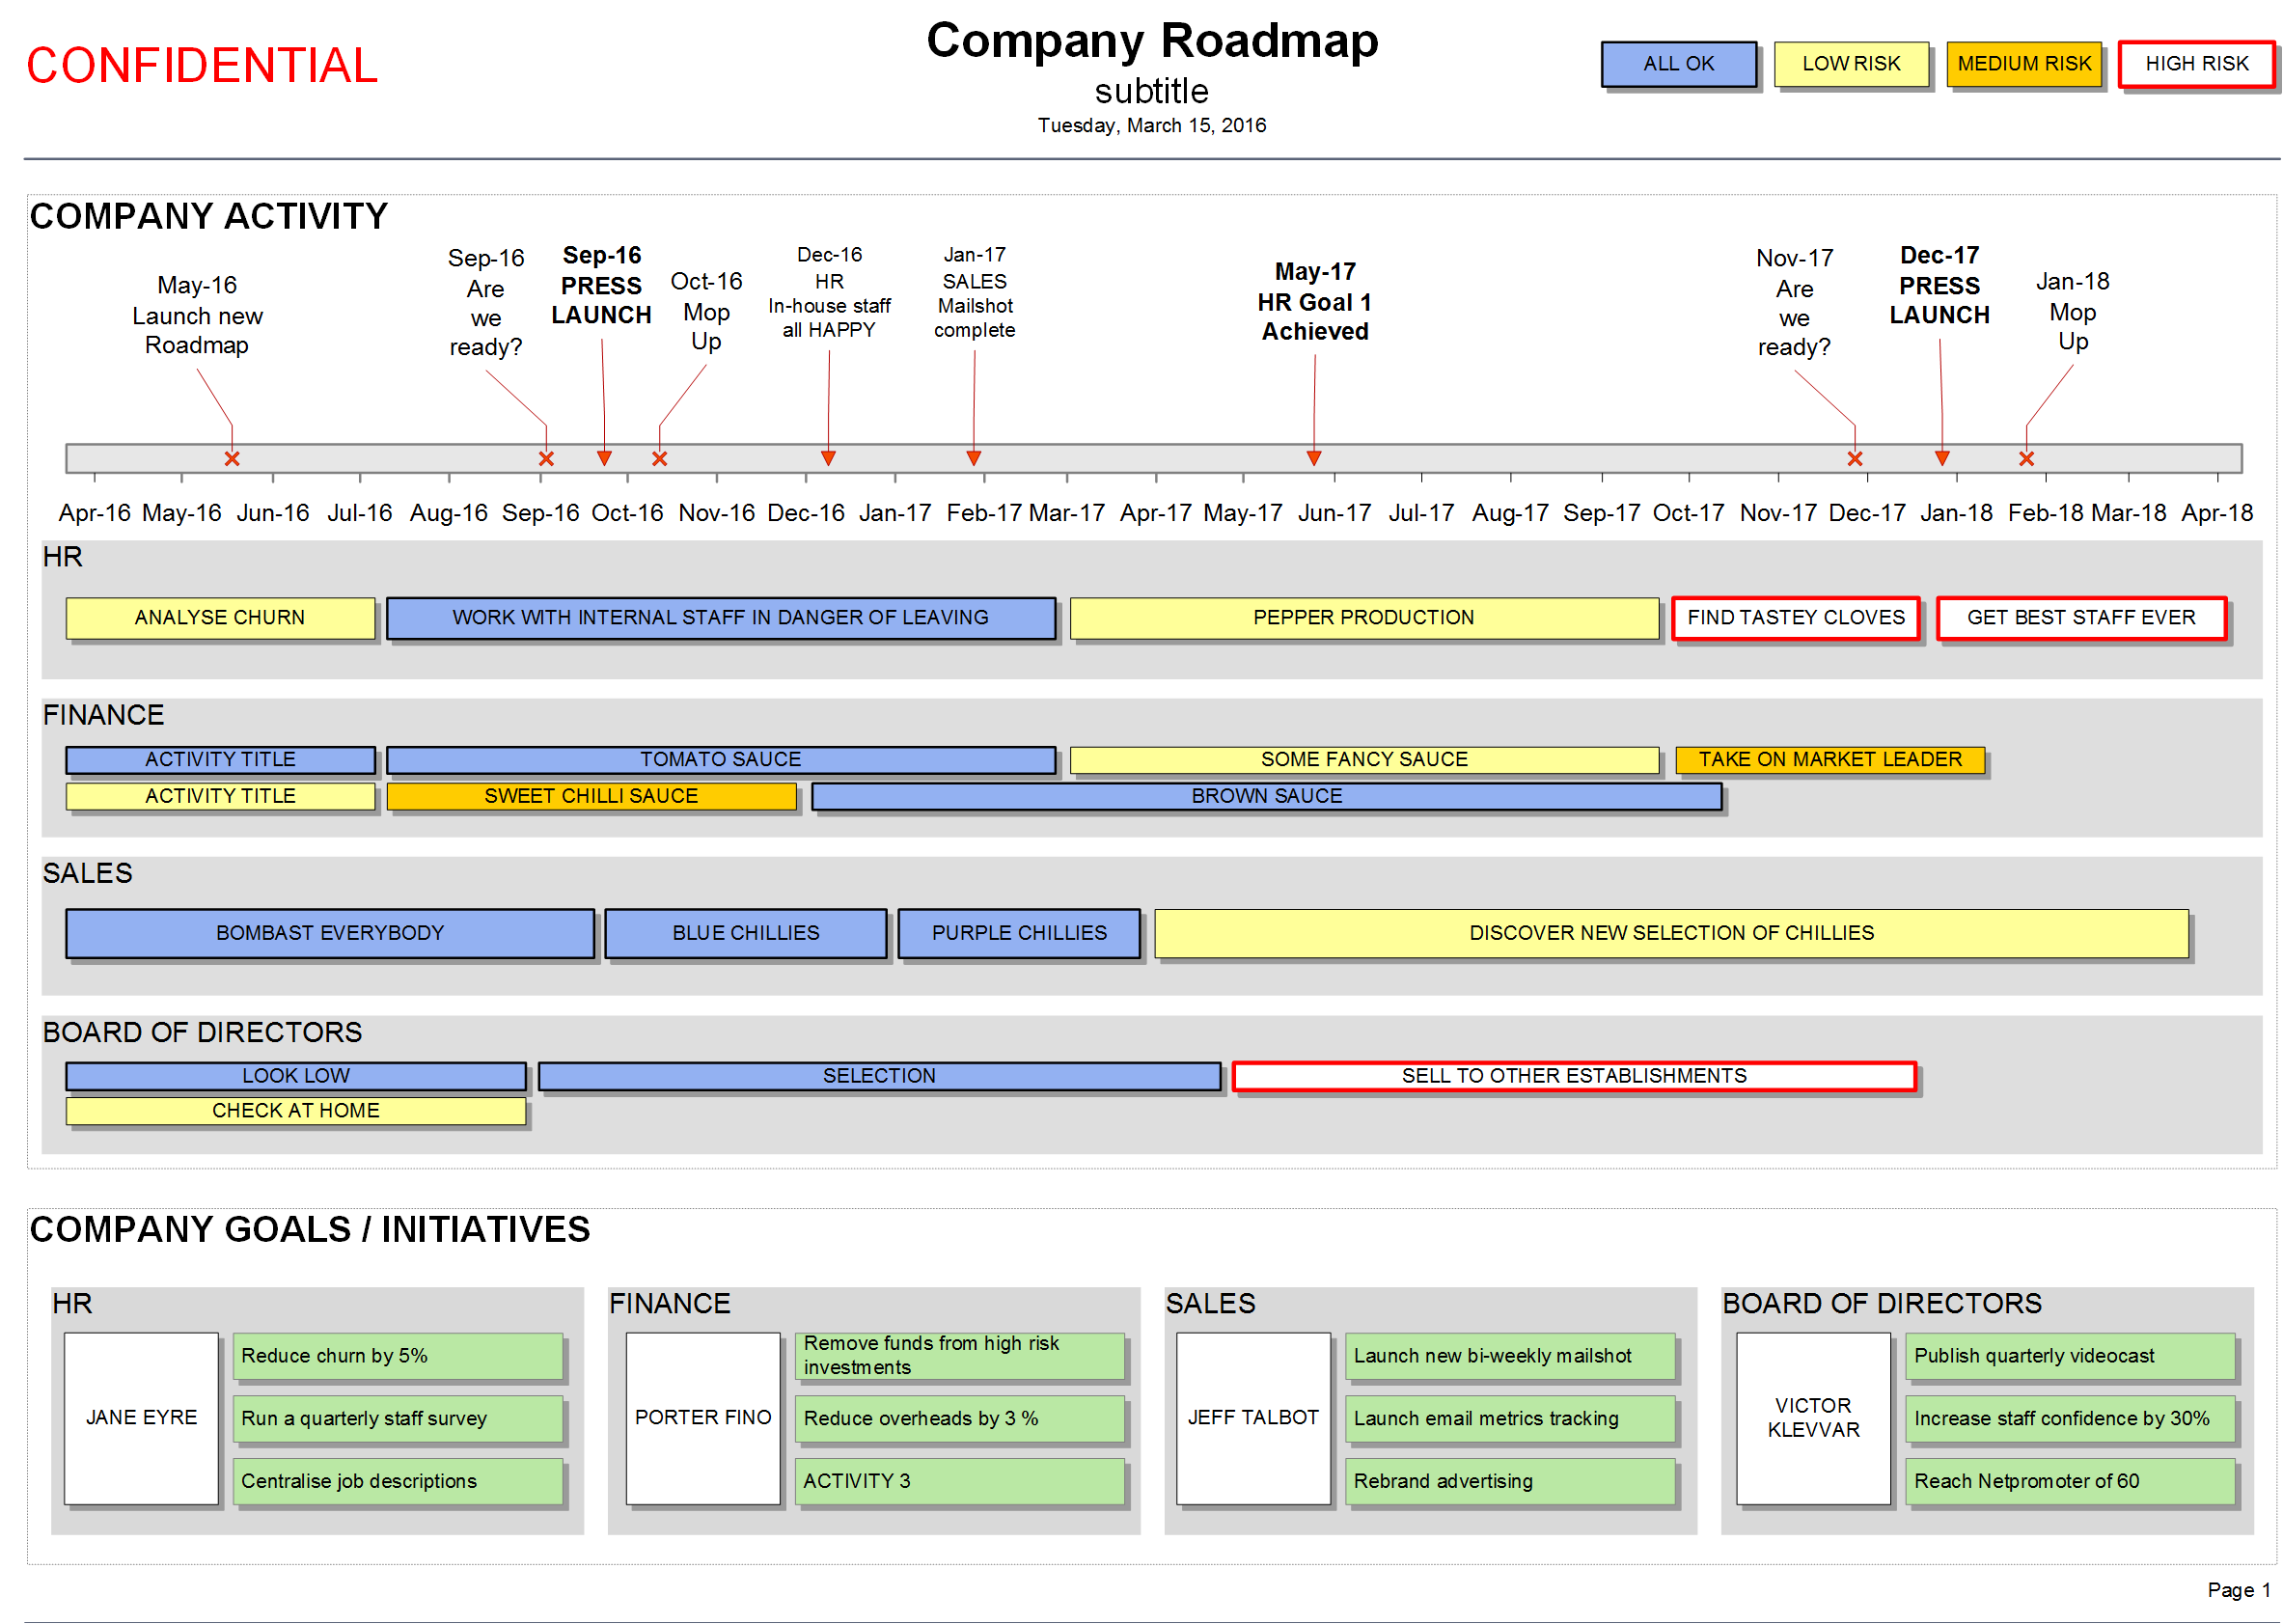 Company Roadmap Template Visio Pinterest Template - Company roadmap template